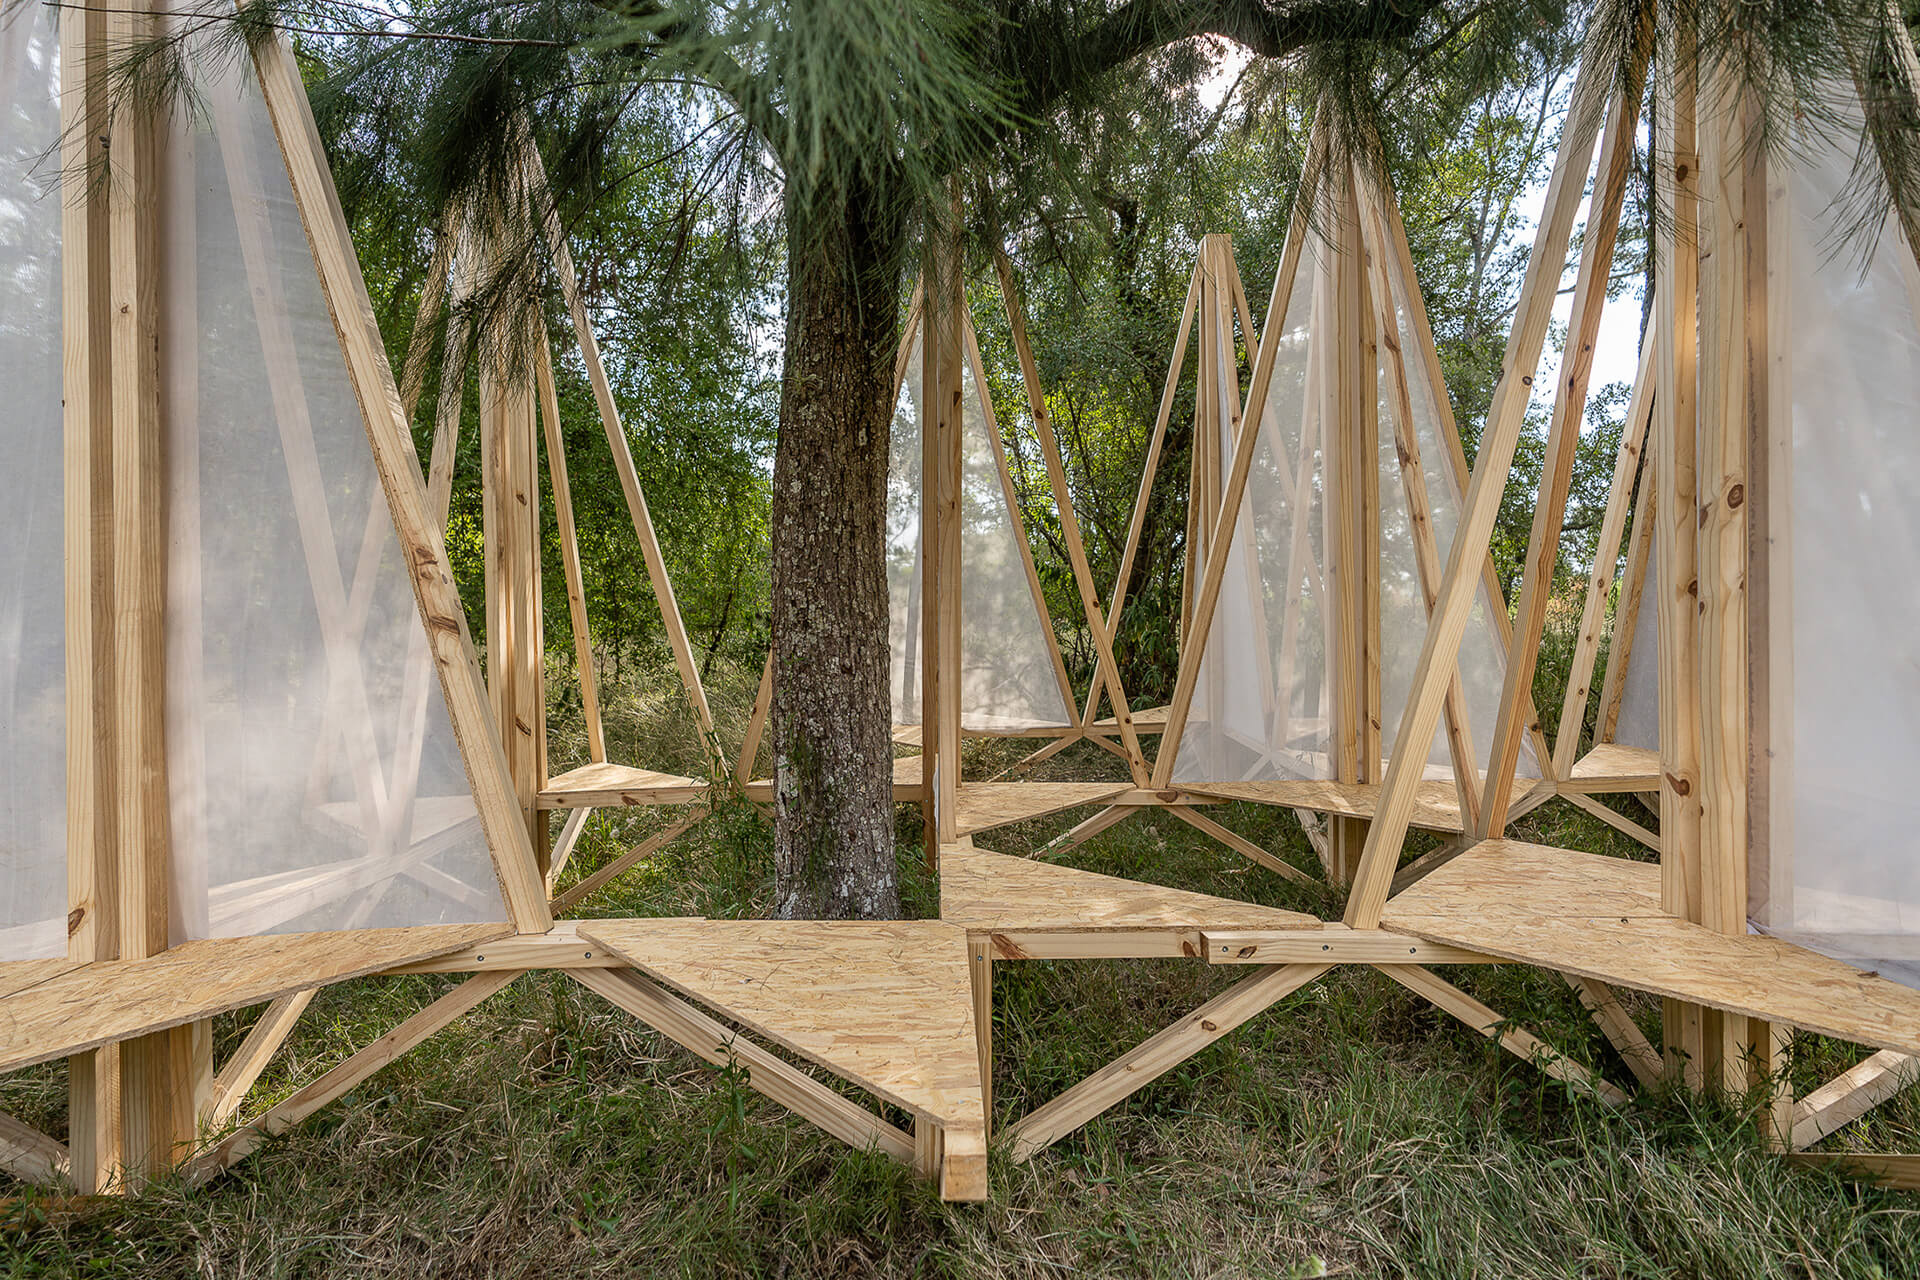 Project Ecosystem is a satellite project created on the theme of 'superpositioning' at the Hello Wood Festival 2020 in Argentina | Installations in Wood | STIRworld